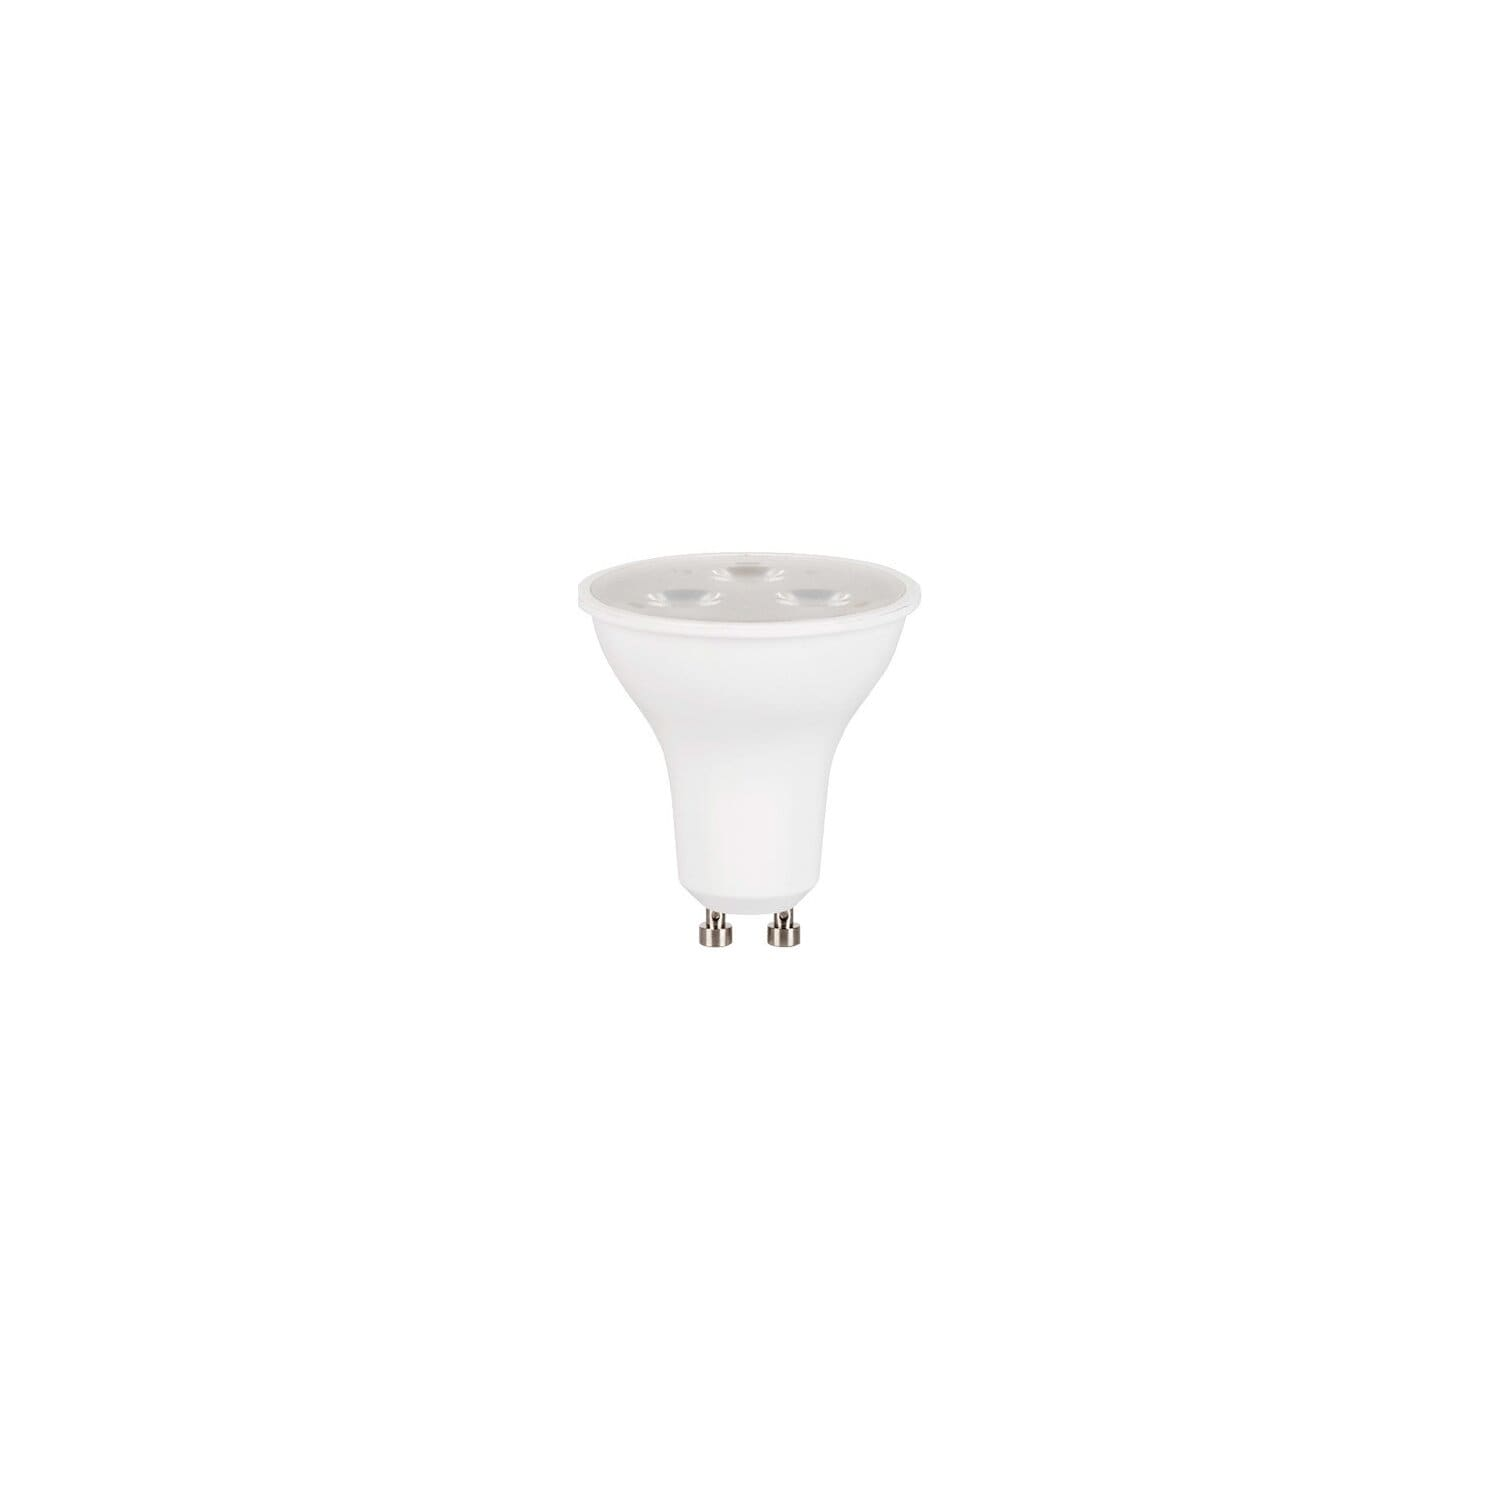 Żarówka GENERAL ELECTRIC LED3/GU10/865/100-240V/35 BX 1/8